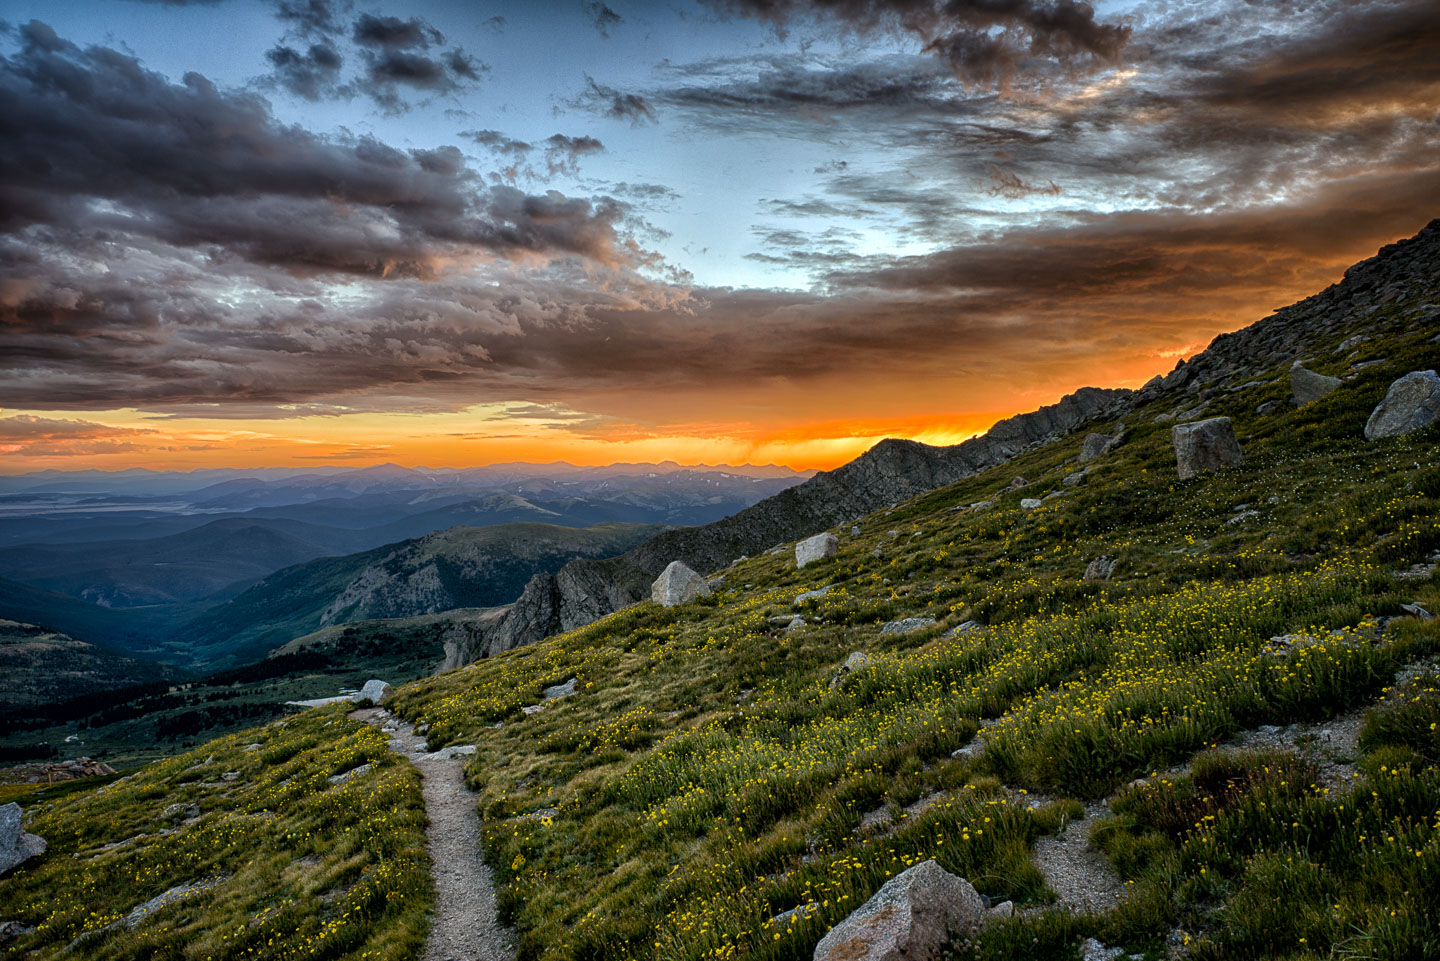 mount-evans-hiking-path.jpg